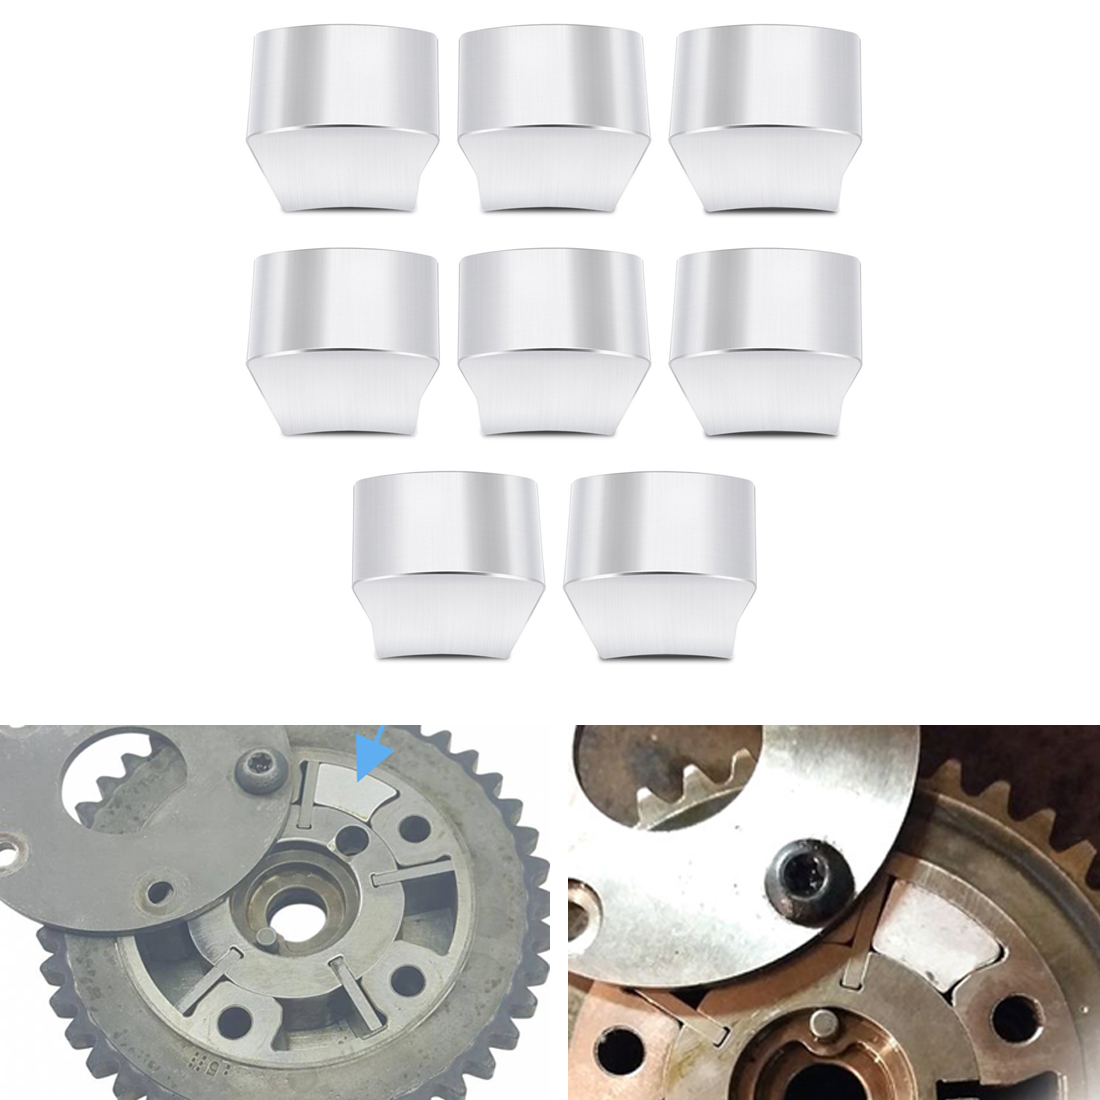 3 Valve Engine Timing Chain Cam Phaser Lock Out Kit For Lincoln Ford 5.4L 4.6L